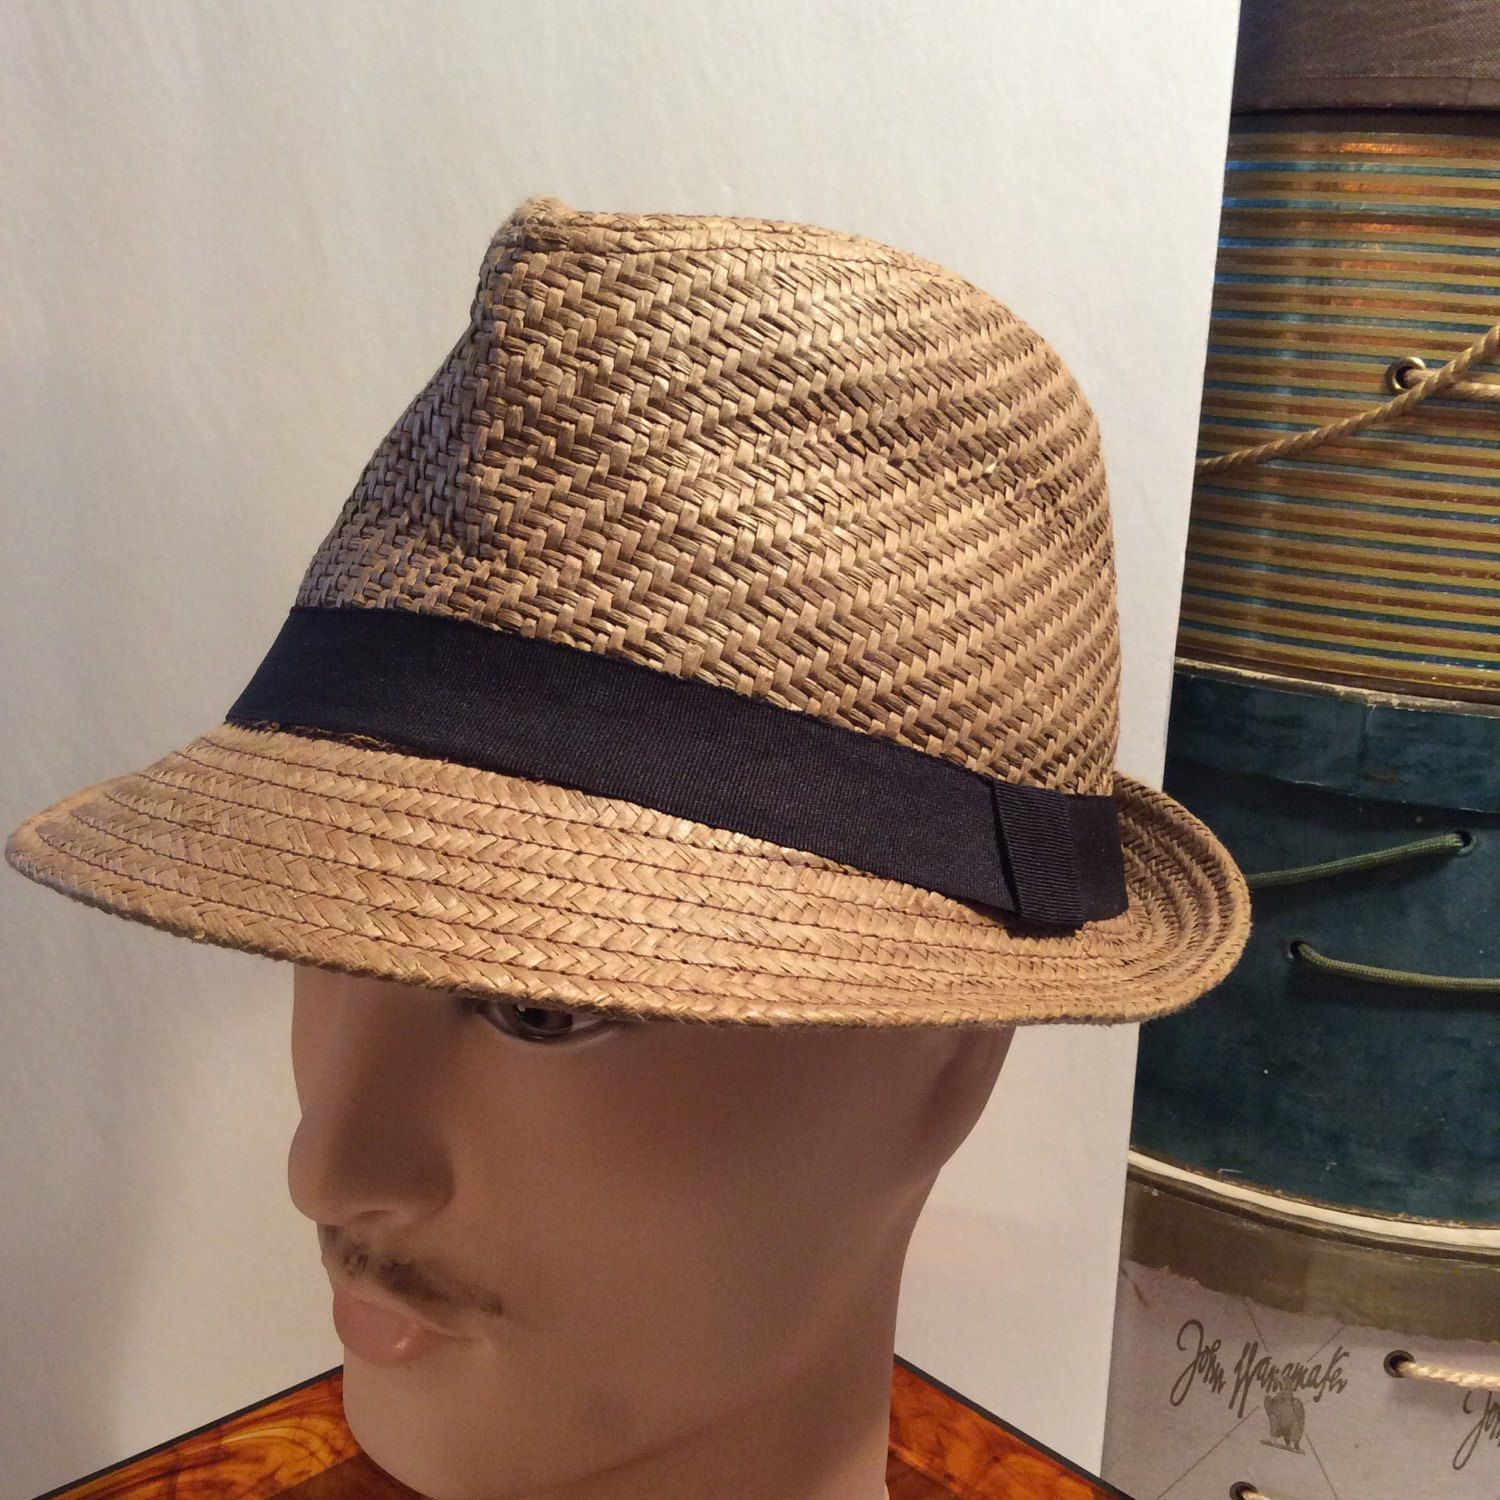 20% OFF SALE Vintage Milani Natural Straw Fedora Hat Italy  ad95a7cccf2